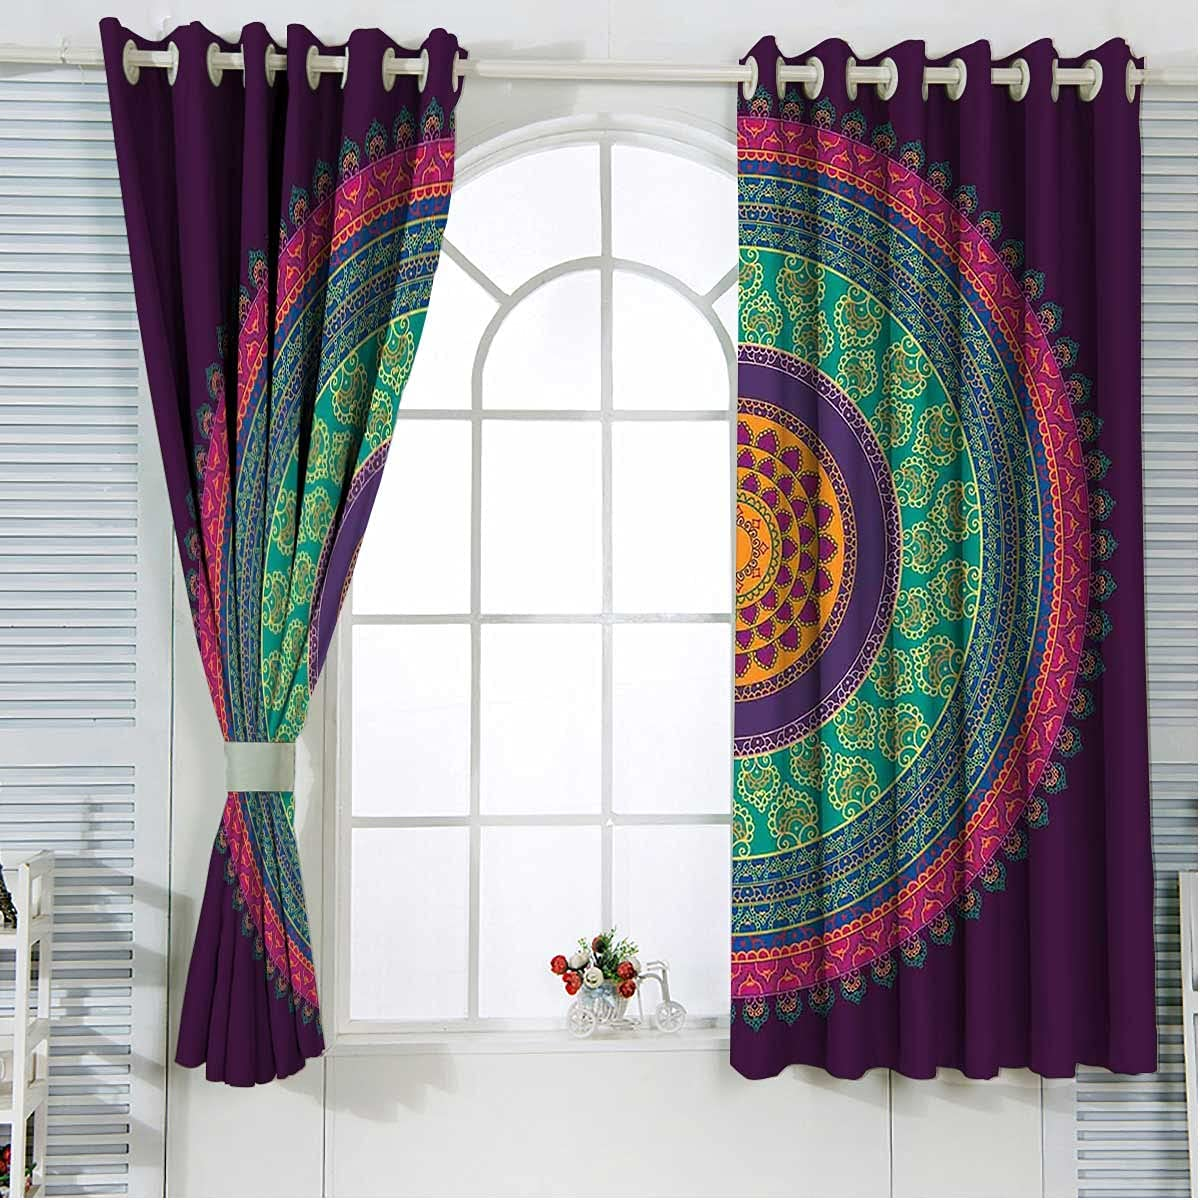 Ranking TOP17 Privacy Curtain 108 Inch Length Oriental Curls Jacksonville Mall Petals Kitch and